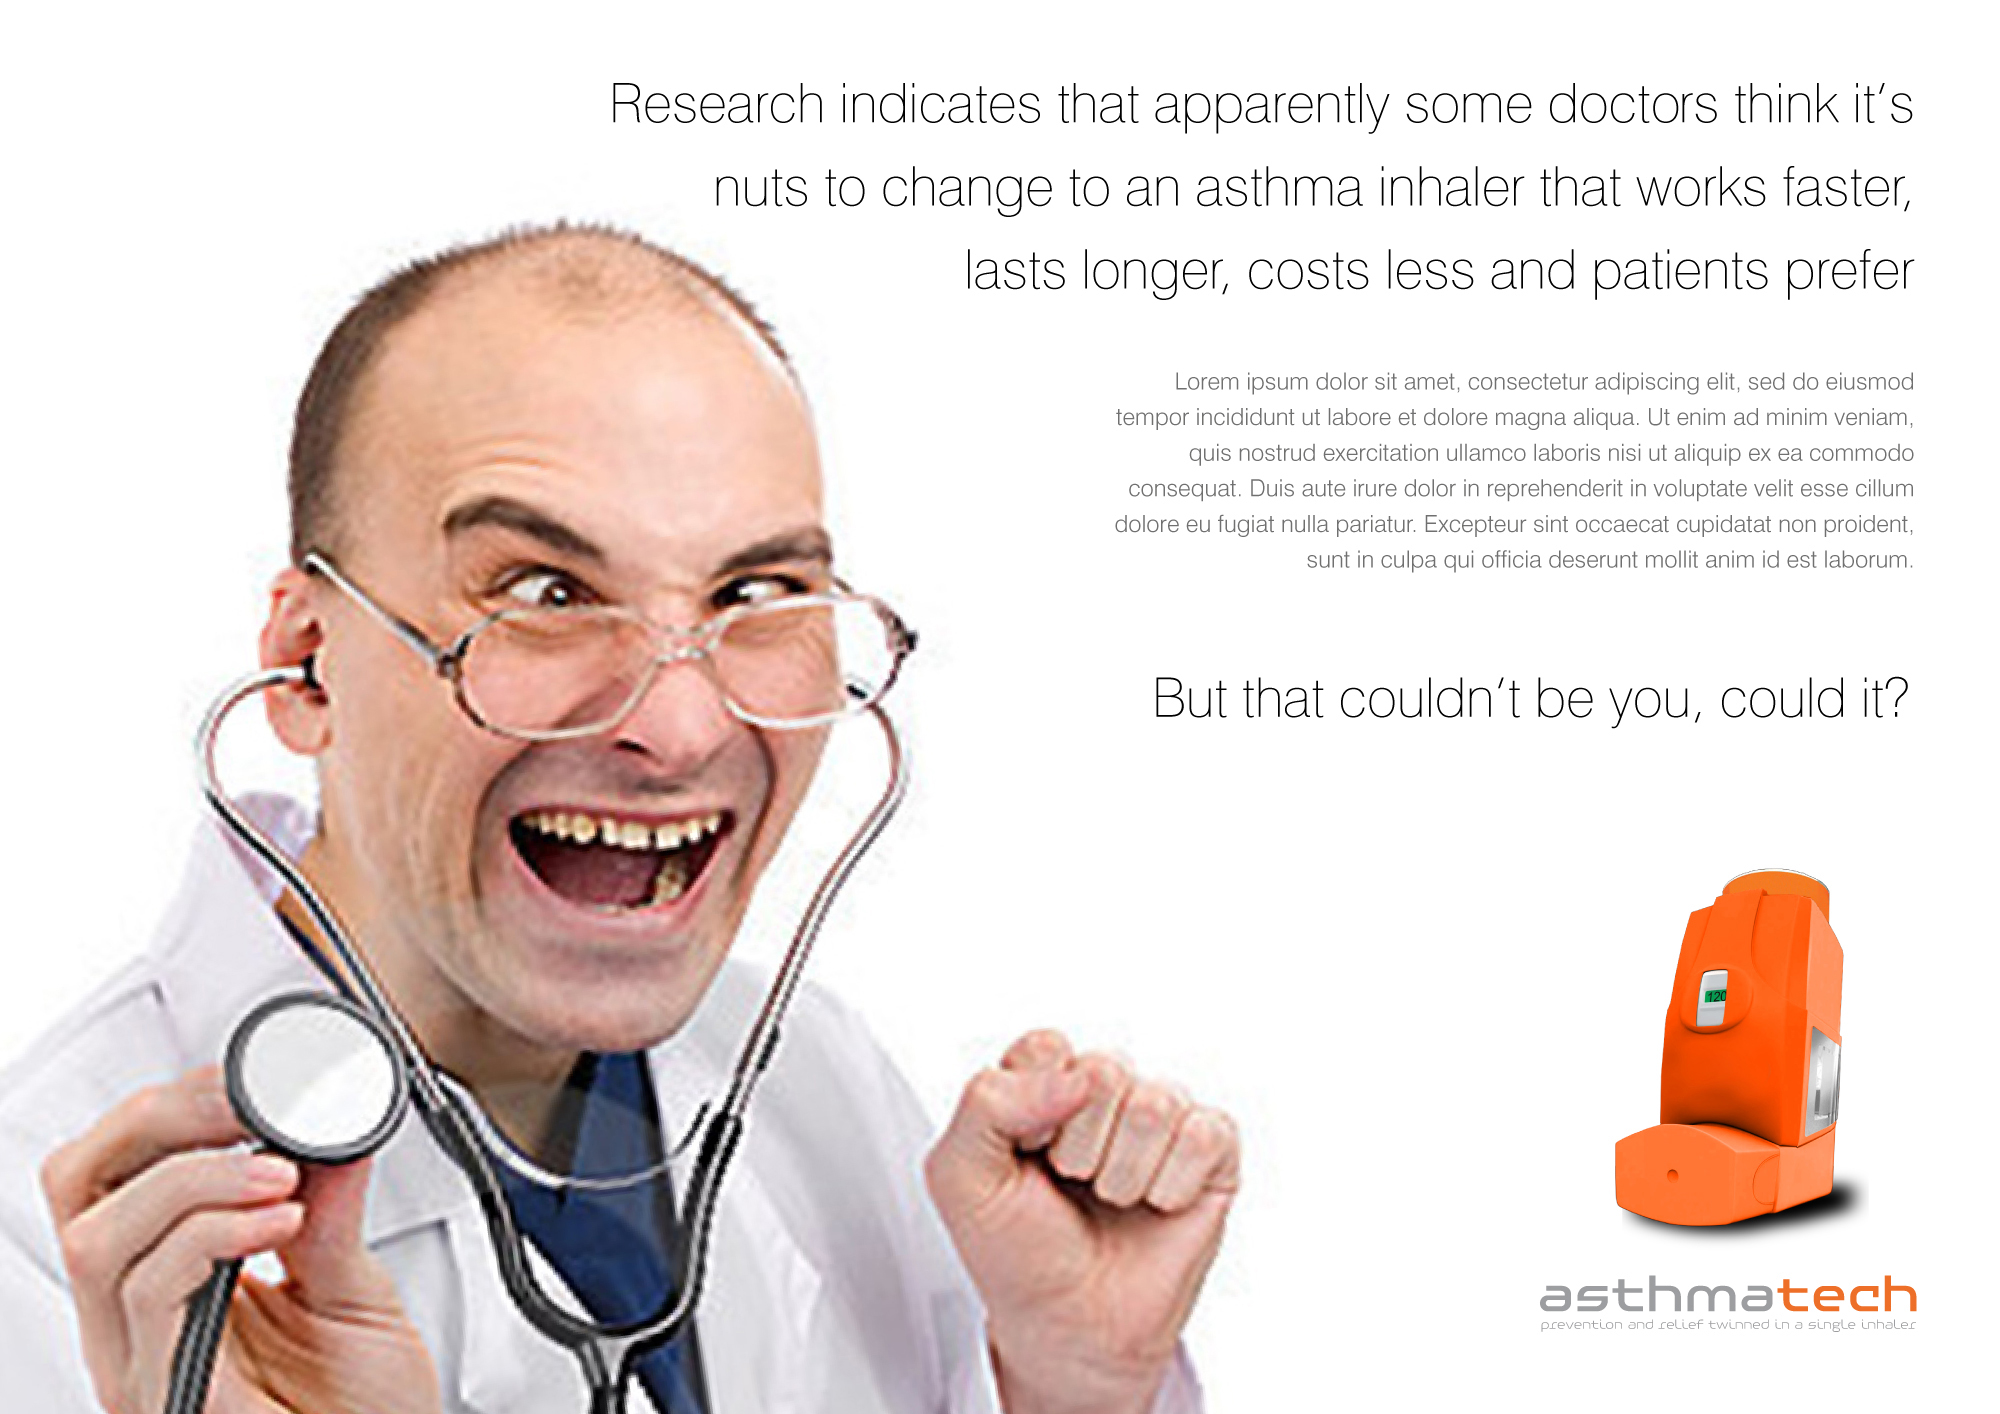 02_crazy_asthmatech_ad_concept